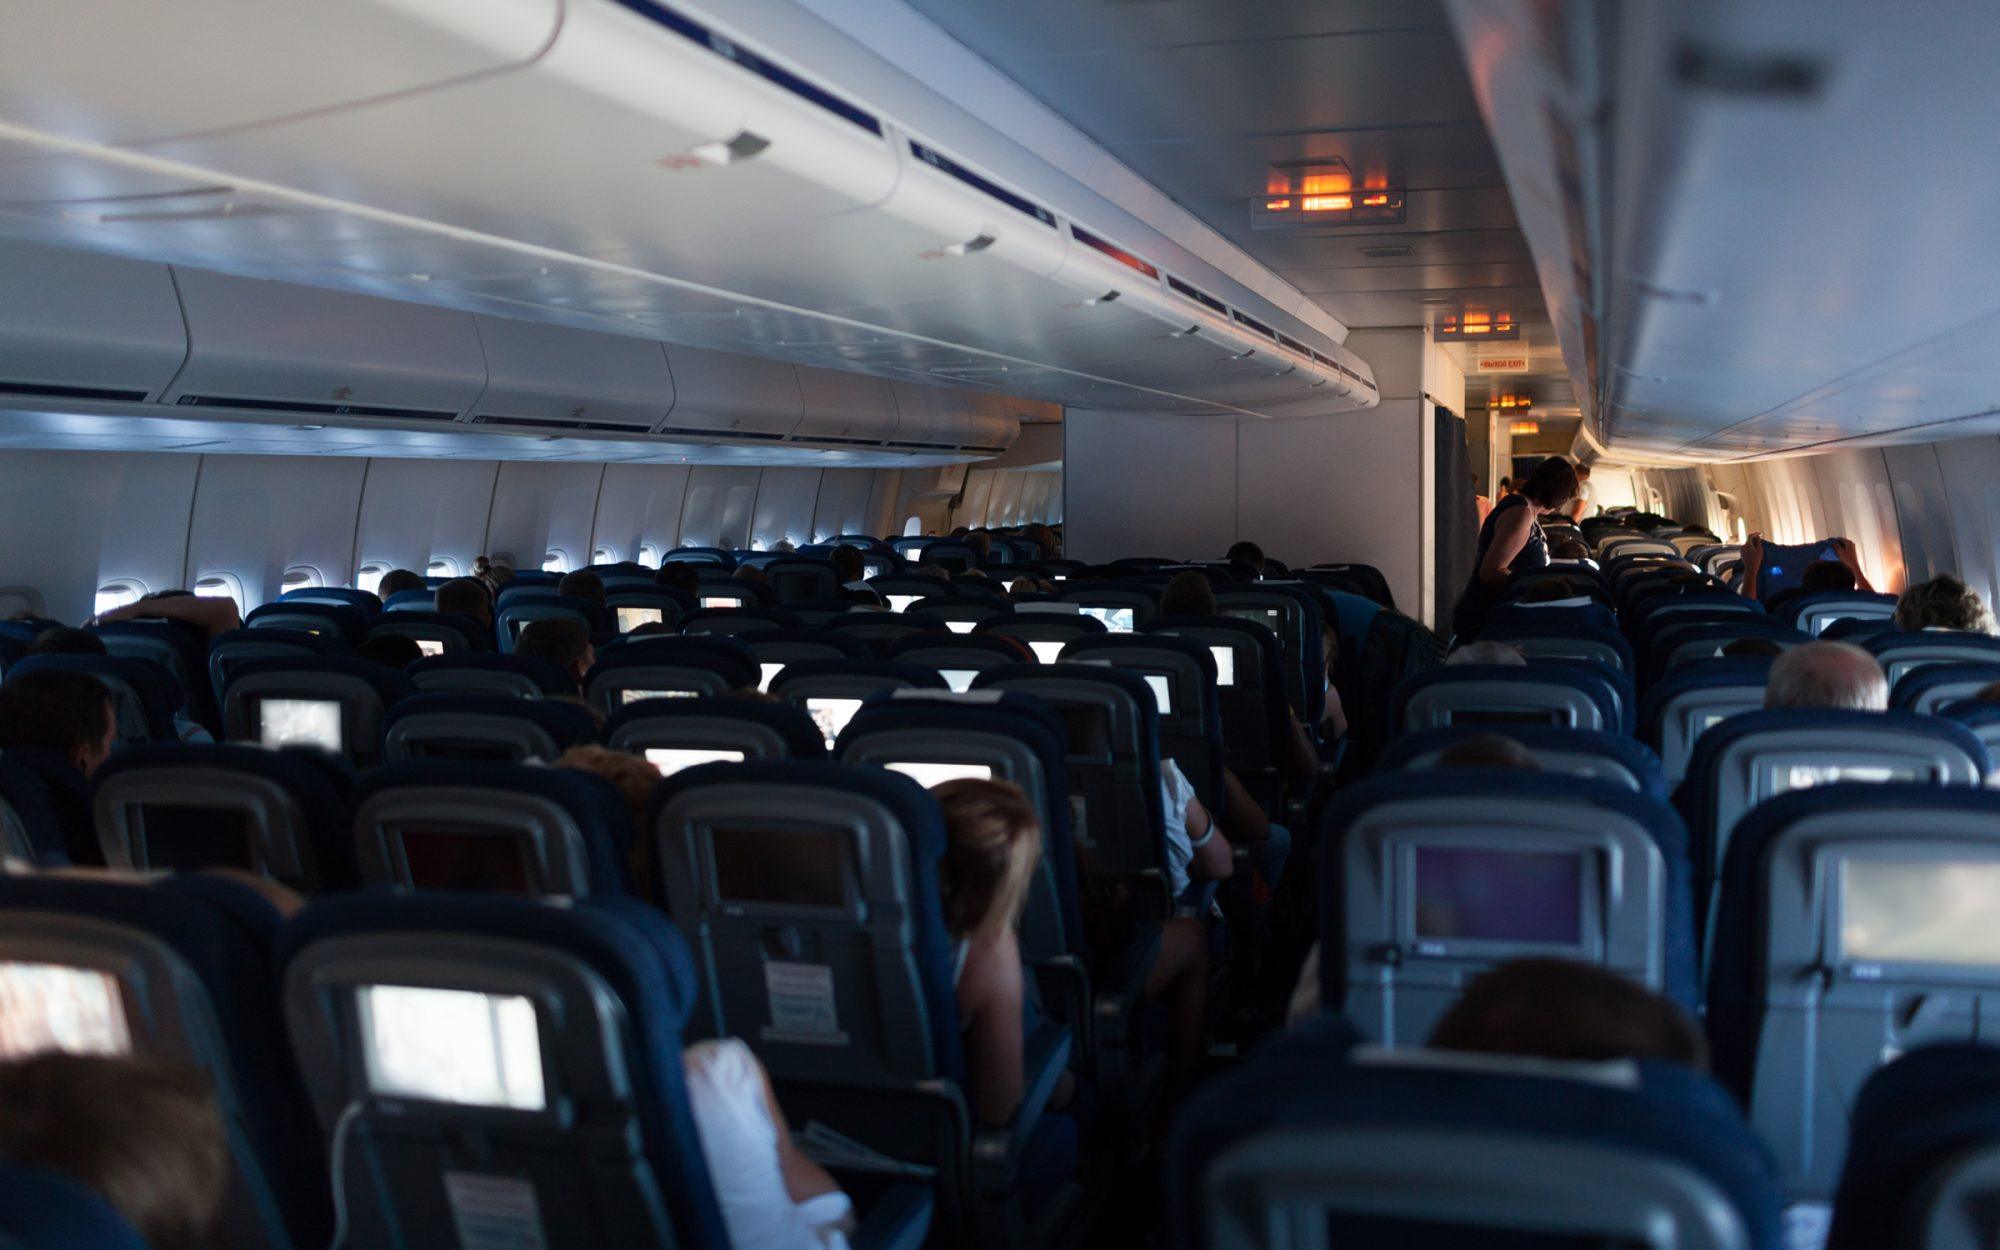 Airplane cabin with dim lights